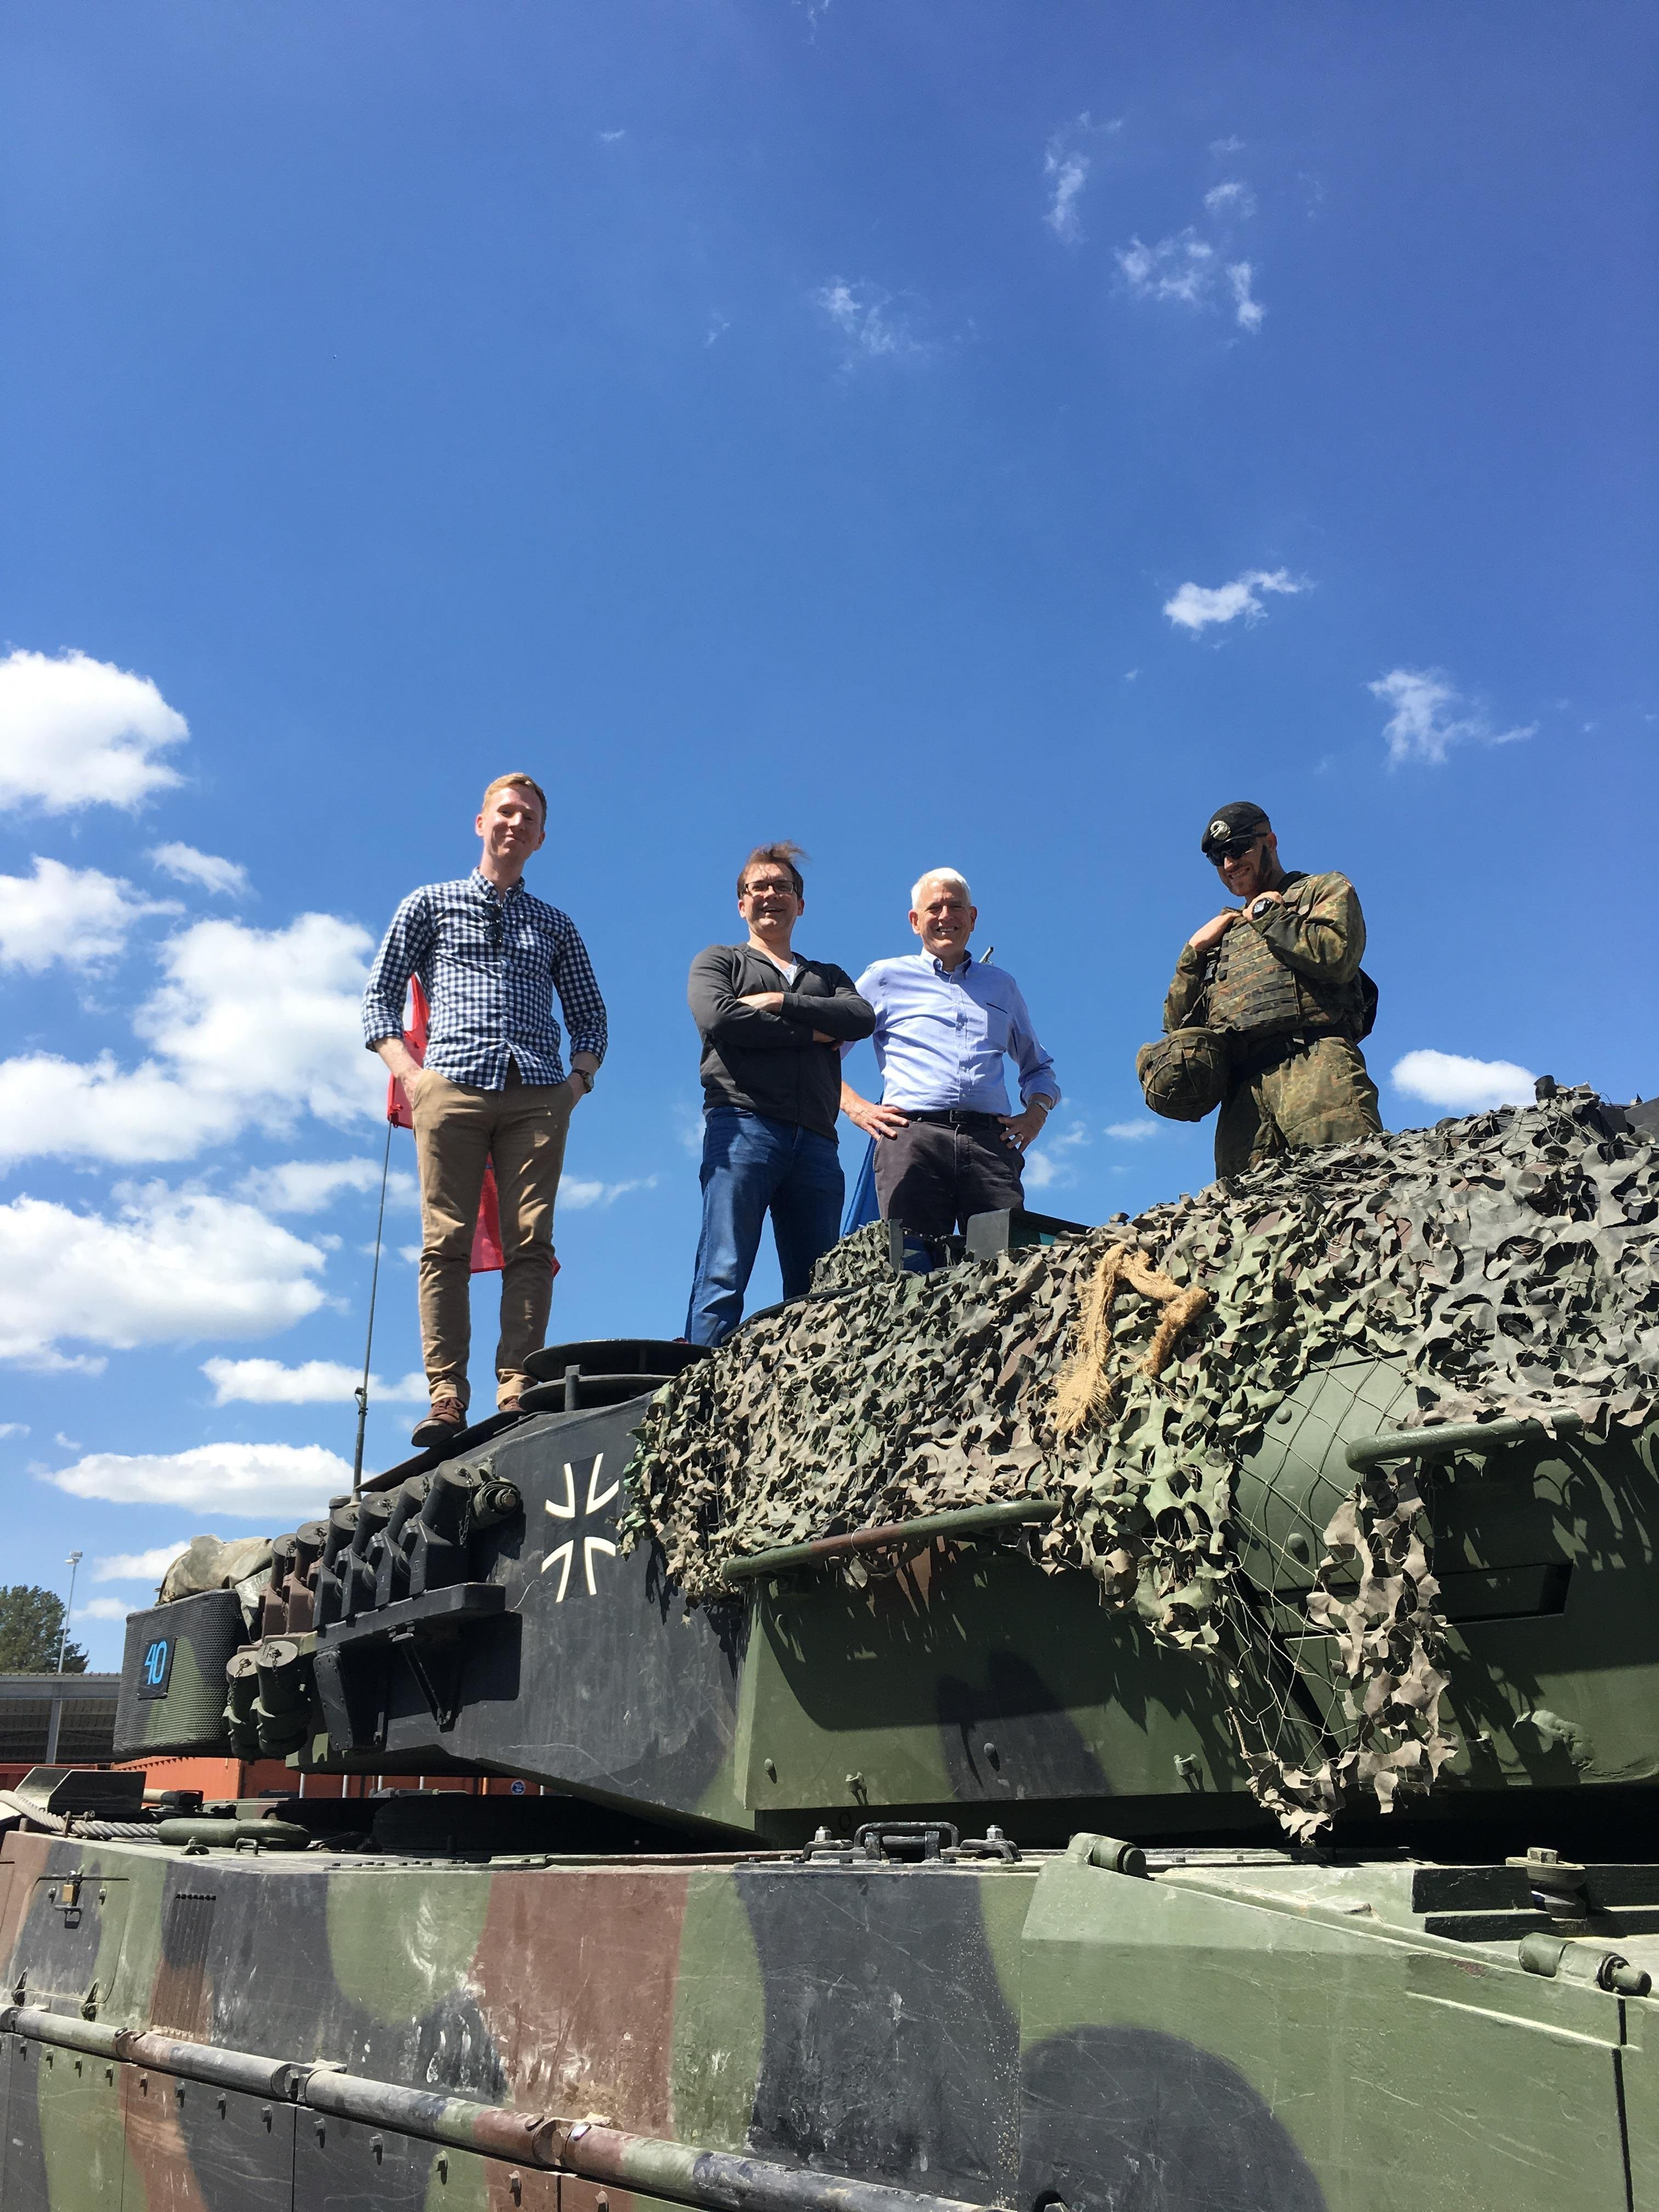 Connor McPartland (Atlantic Council), Chris Skaluba (Atlantic Council) and Steve Pifer (Stanford/CISAC) atop Leopard II tank, part of German contribution to NATO battlegroup in Lithuania.